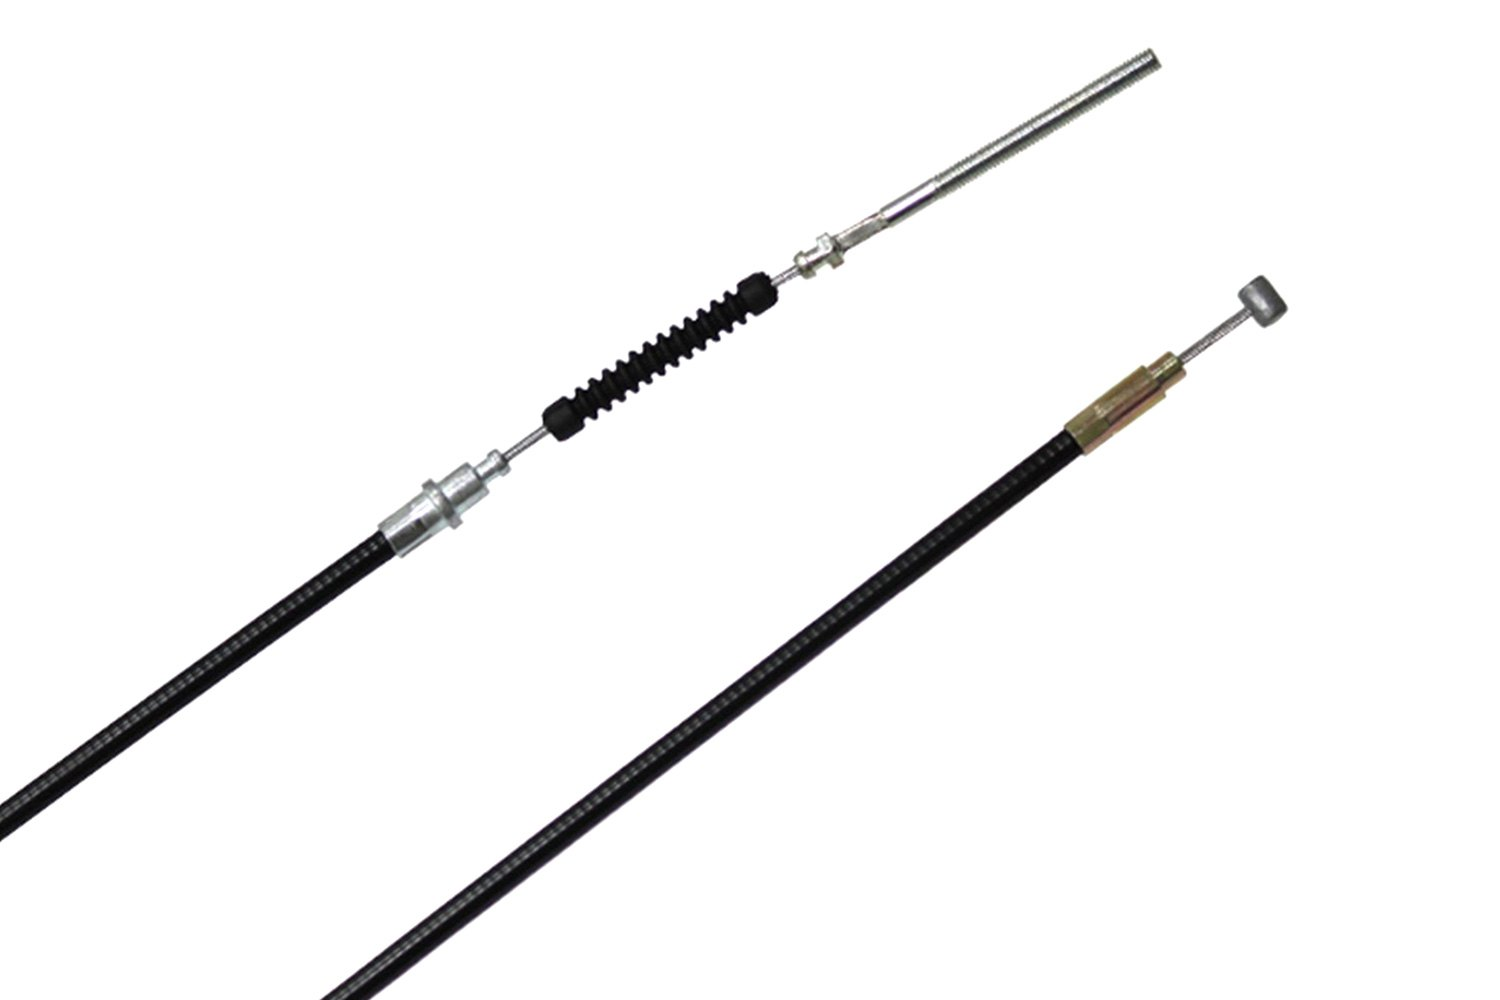 Rear Hand Brake Cable~2003 Honda TRX350FE FourTrax Rancher 4x4 ES